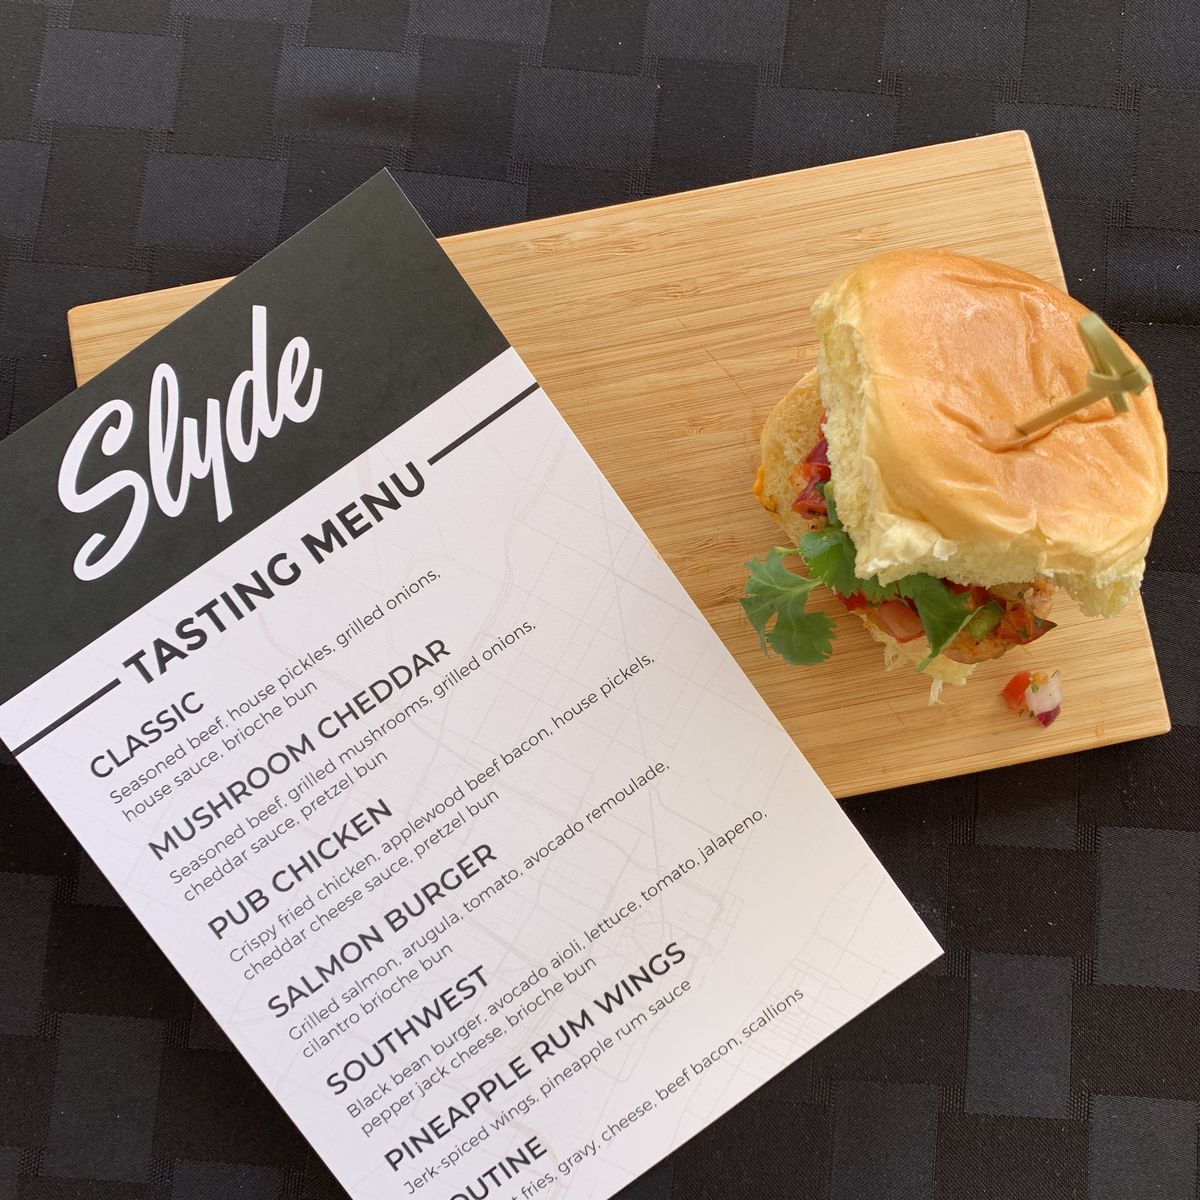 A slider on a wooden board next to a Slyde menu.